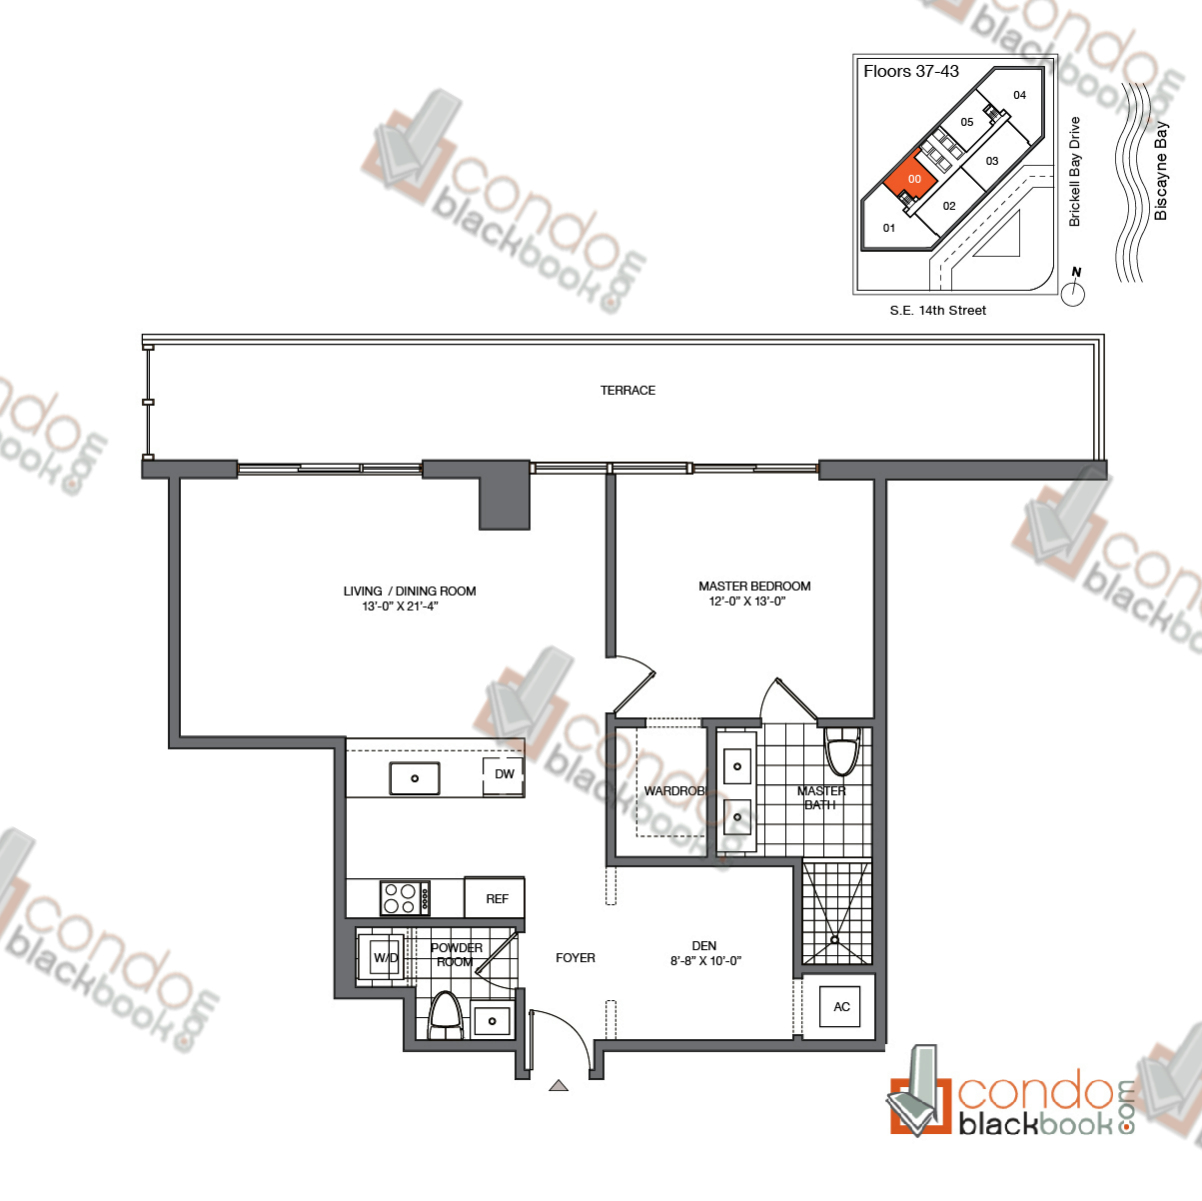 Floor plan for Brickell House Brickell Miami, model A2_37-43, line 00, 1/1.5 + Den bedrooms, 965 sq ft